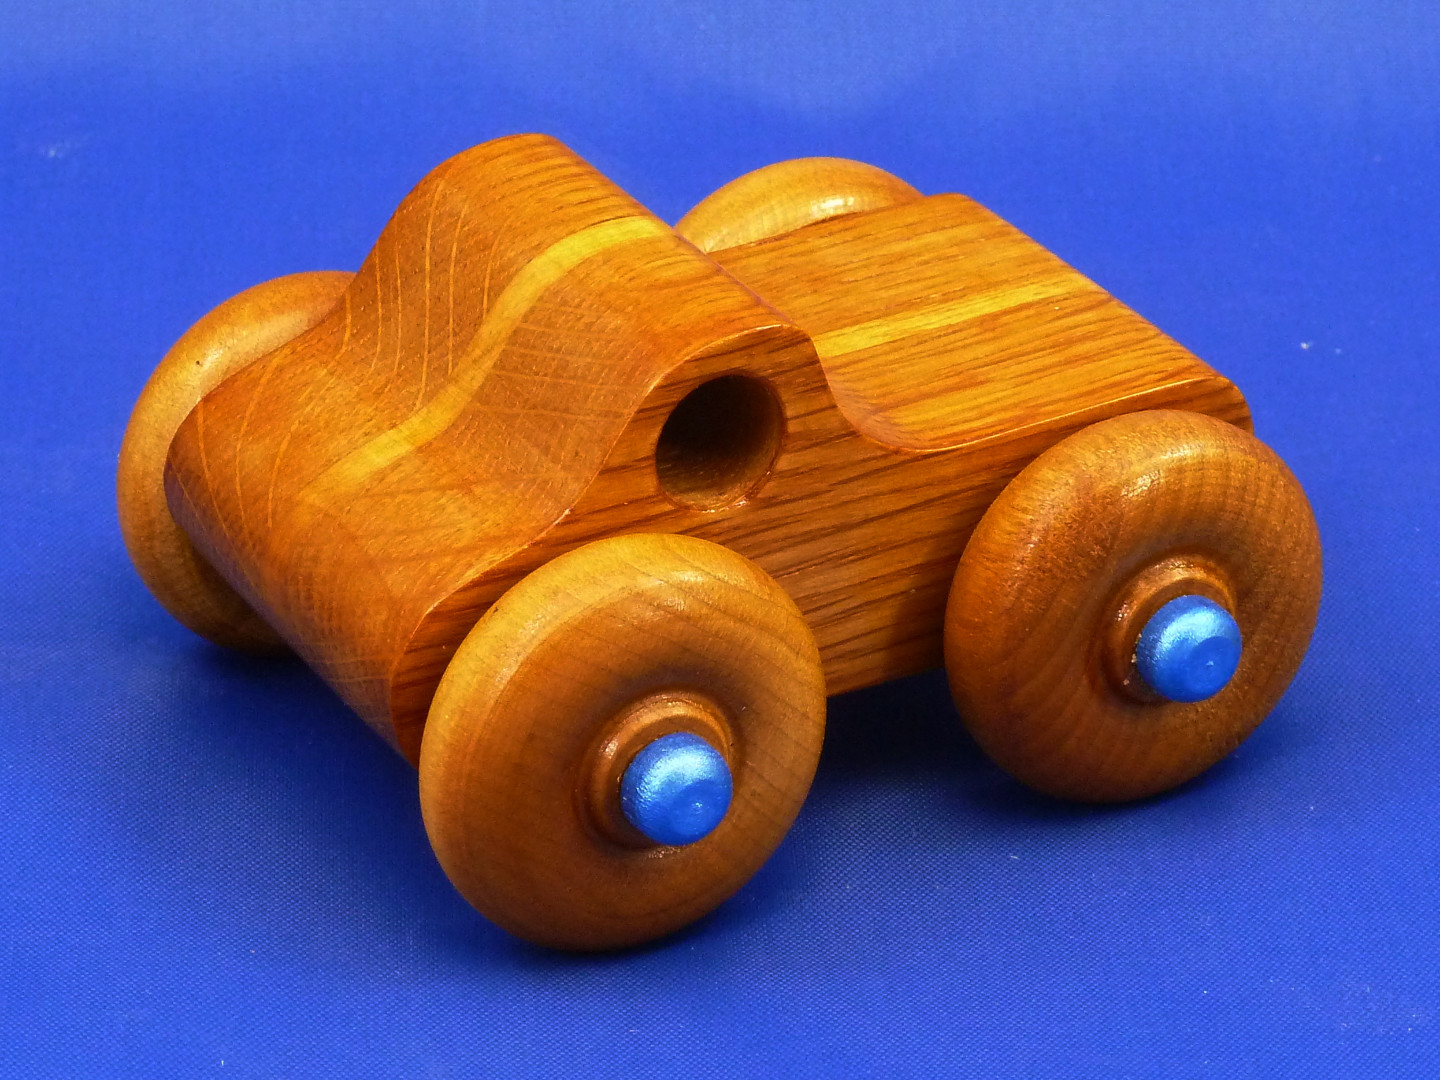 20170104-184047 Wood Toy Truck, Wooden Toy Trucks, Wood Toys, Wooden Monster Trucks, Wood Truck. Toy Truck, Wooden Truck, Wooden Trucks, Pickup Truck Toy.jpg